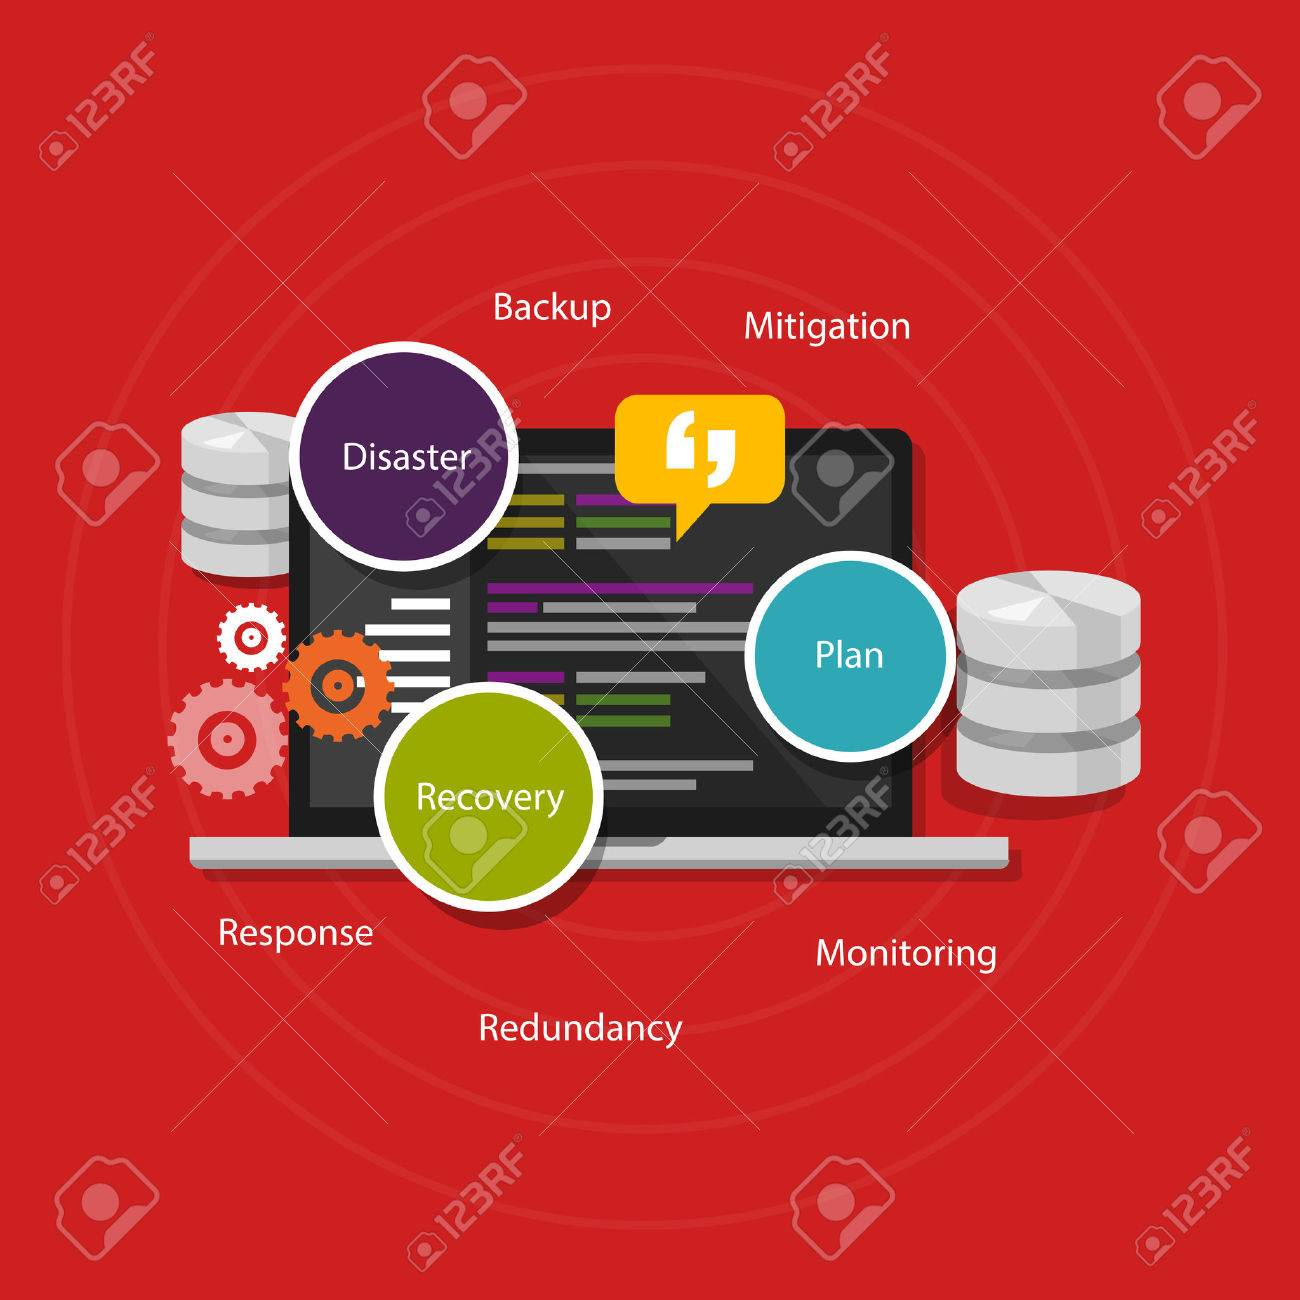 drp disaster recovery plan crisis strategy backup redundancy management vector - 44284207